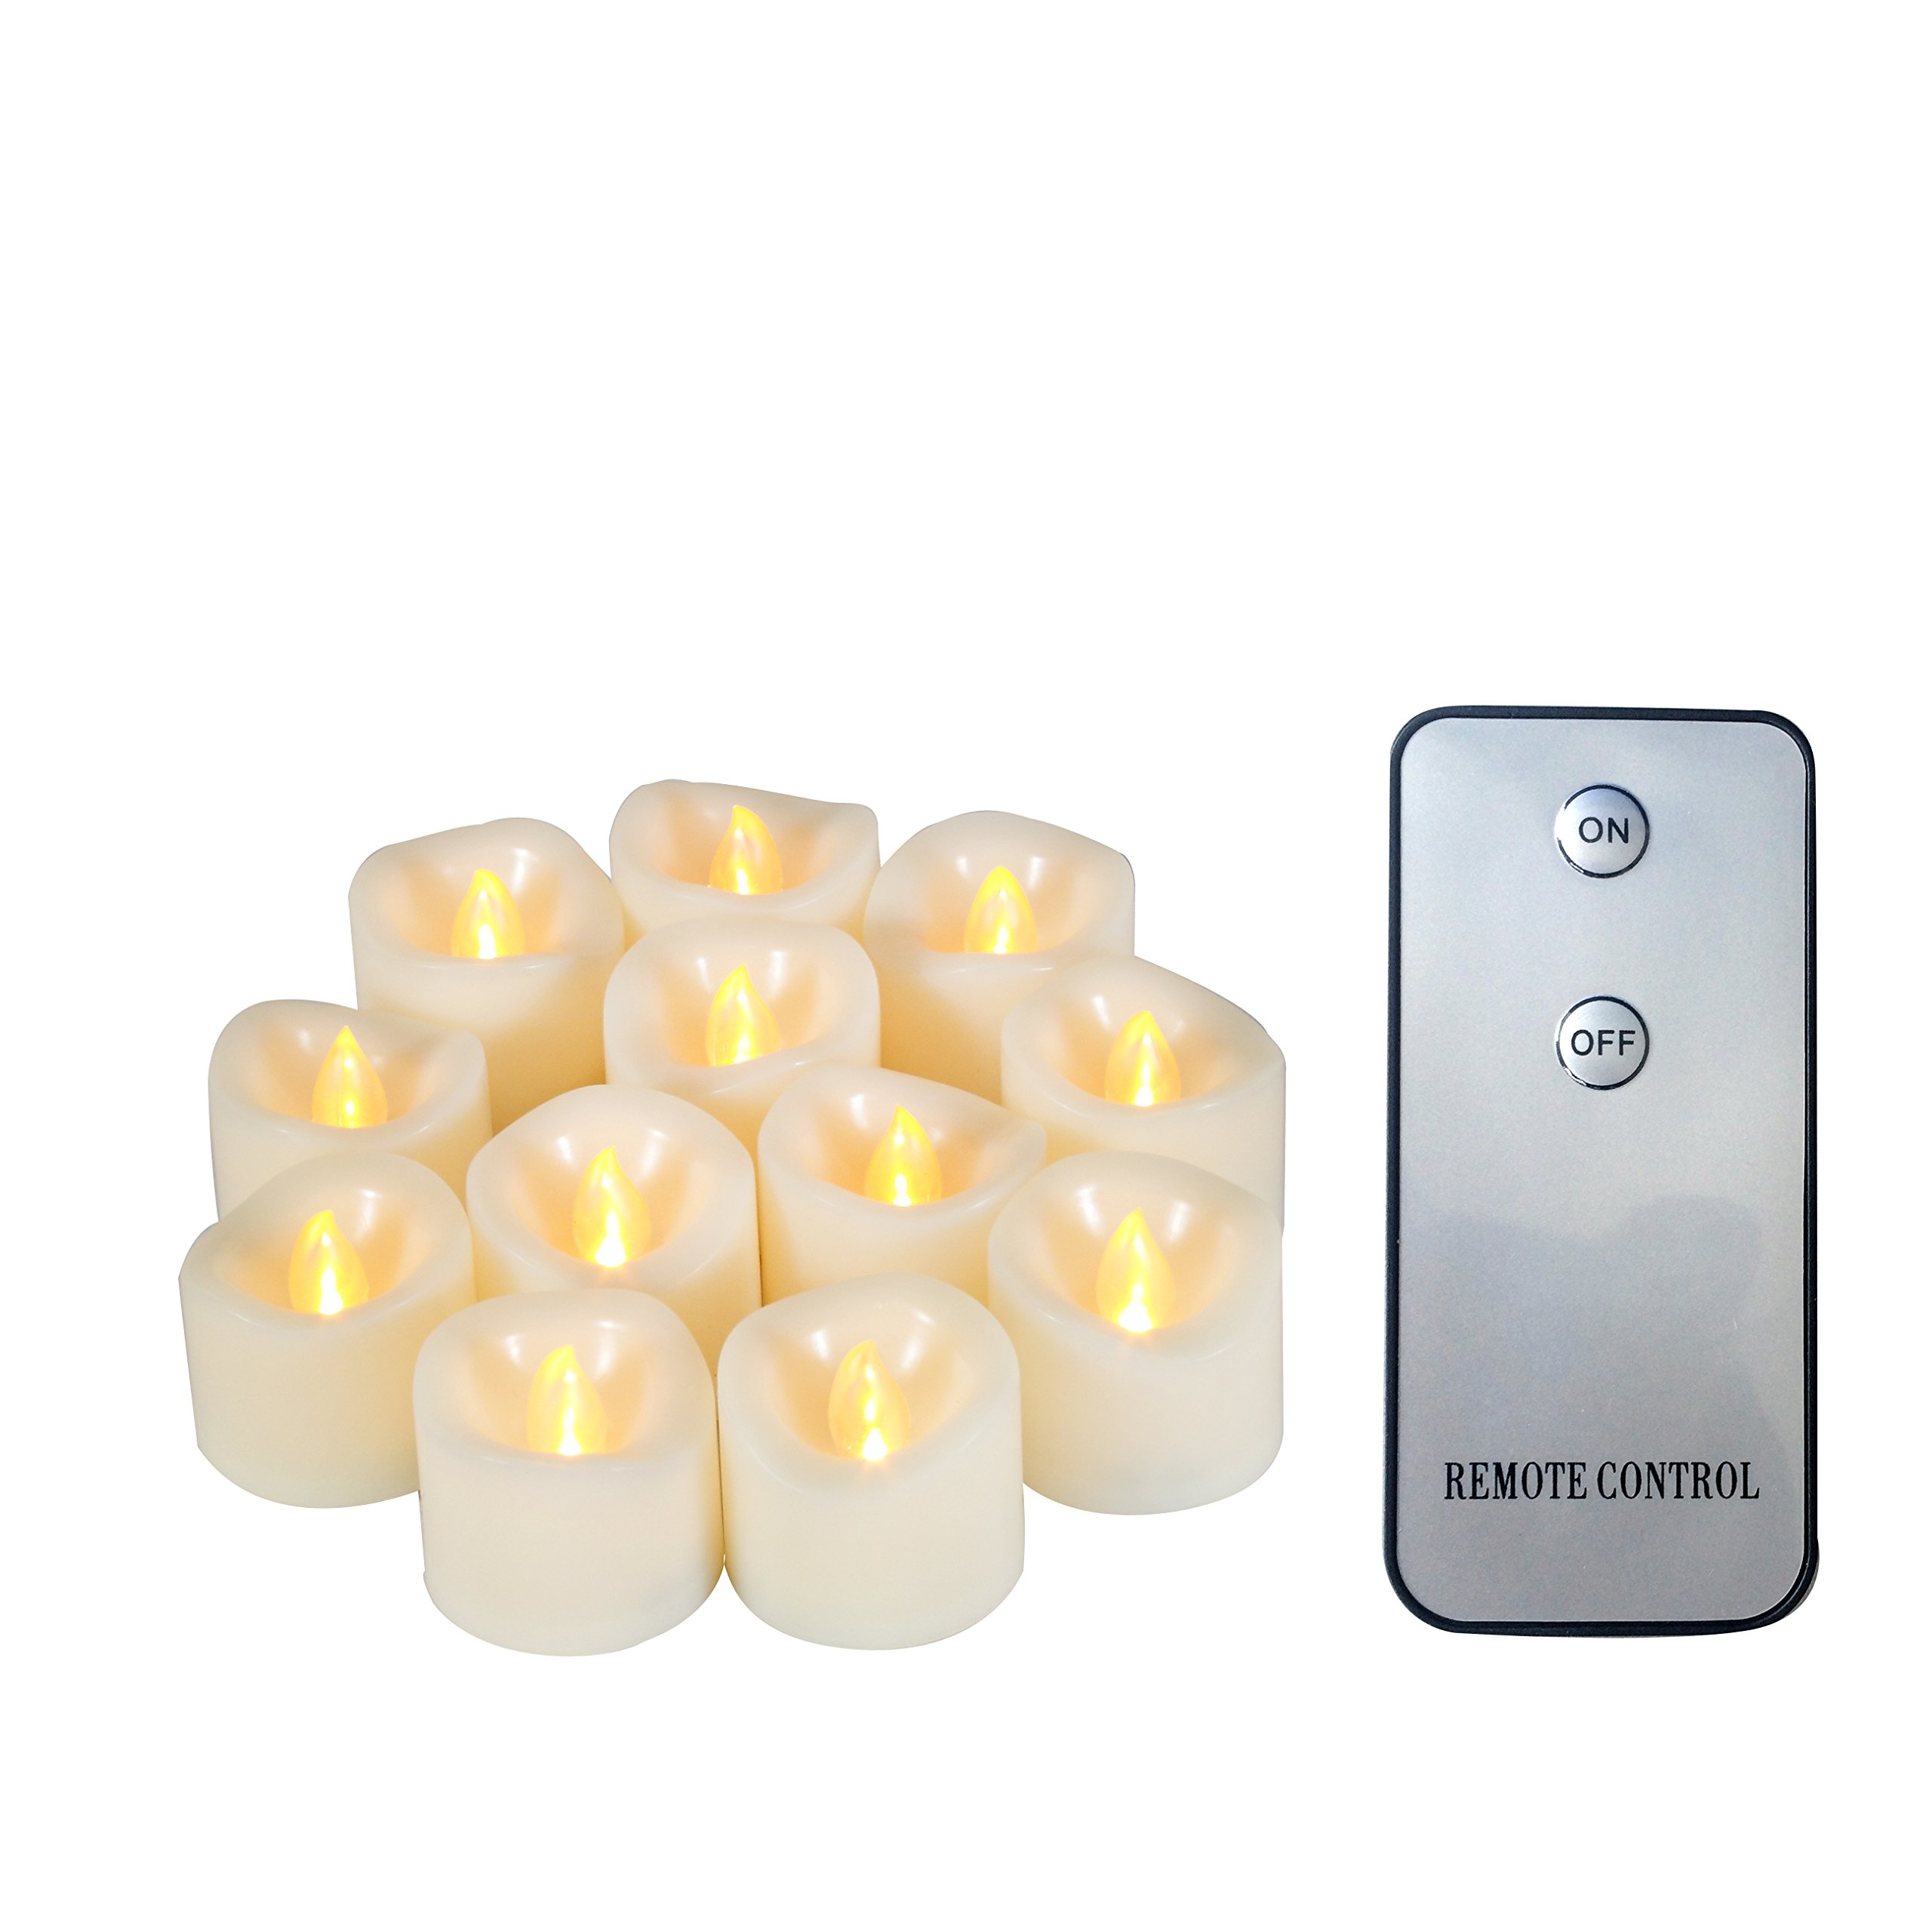 """Candle Choice 12-Pack Realistic Flameless Votive Candles Bright Battery Operated LED Tea Lights with Remote 1.5""""x1.5"""" Long Lasting Tealights Party Wedding Birthday Holiday Home Décor Centerpiece Gift"""